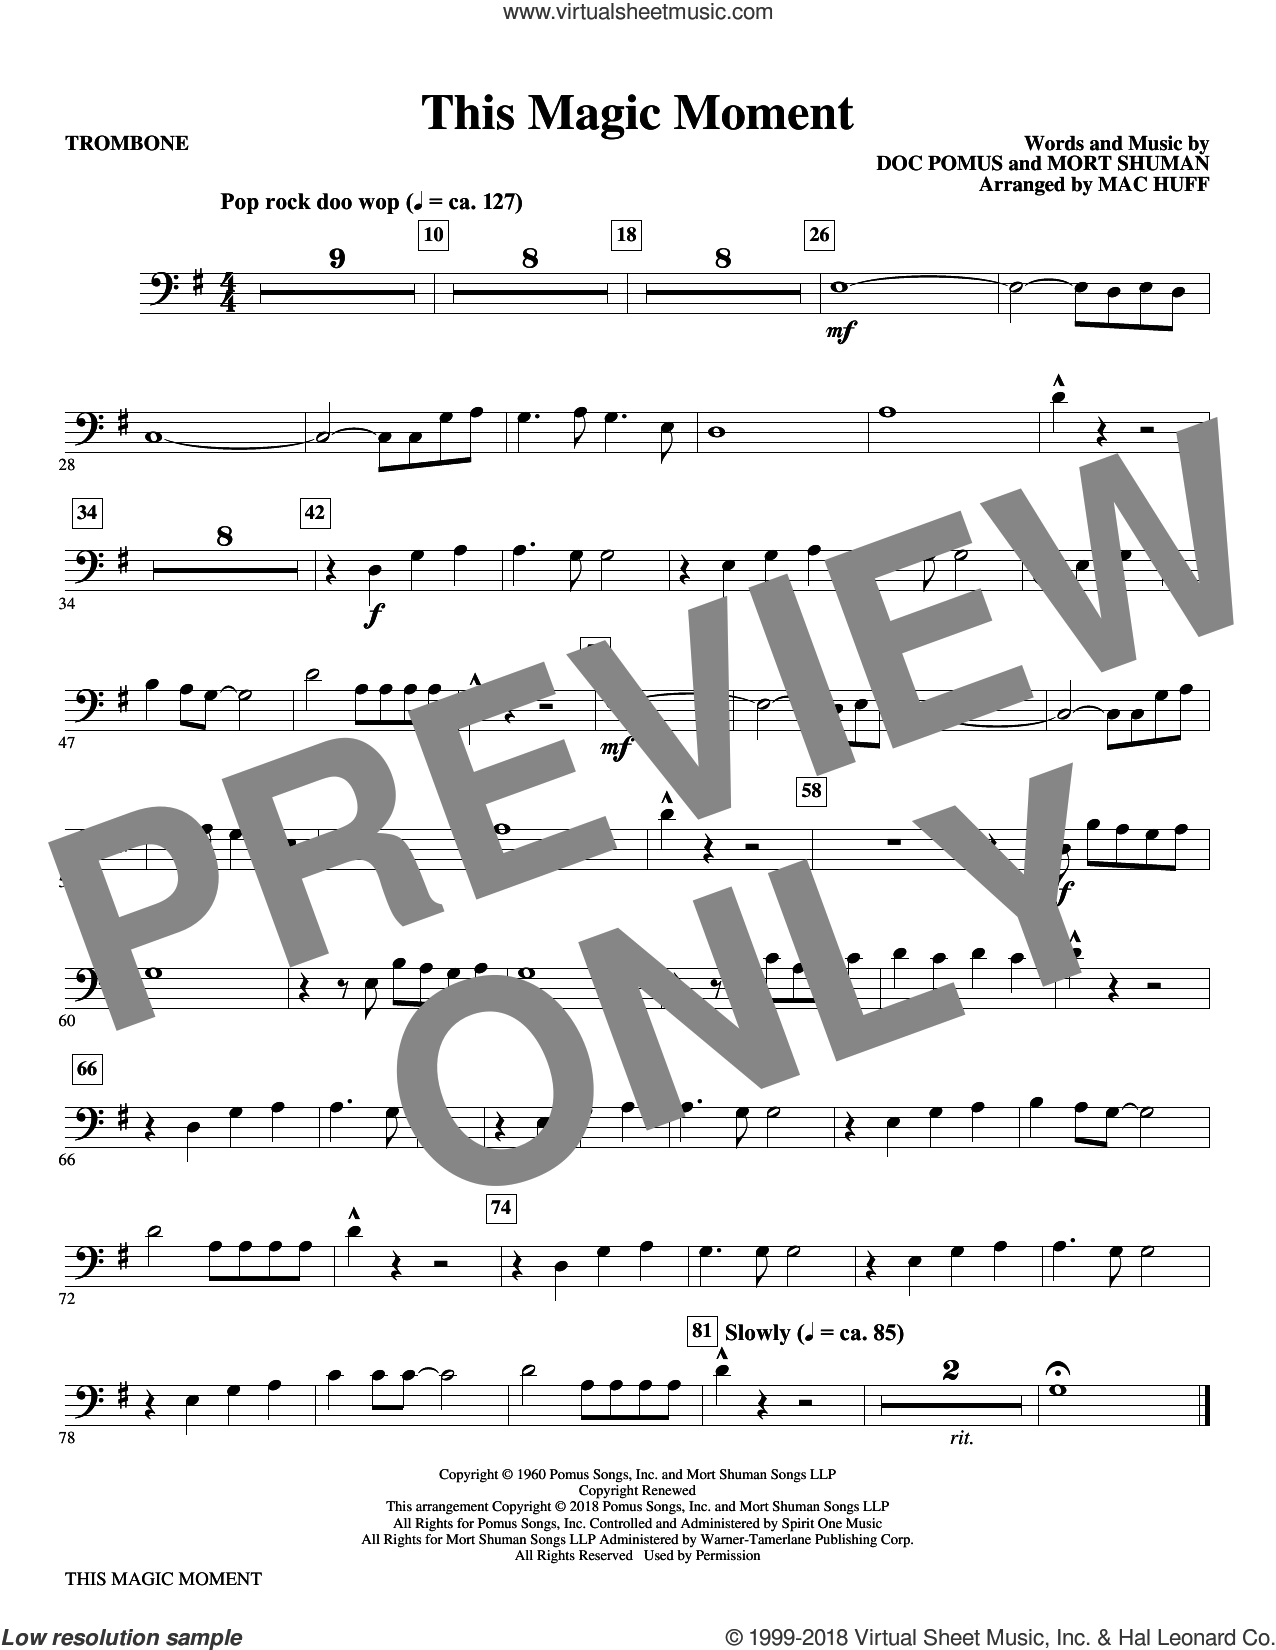 This Magic Moment  (Arr. Mac Huff) sheet music for orchestra/band (trombone) by Ben E. King & The Drifters, Mac Huff, Jay & The Americans, Doc Pomus and Mort Shuman, wedding score, intermediate skill level